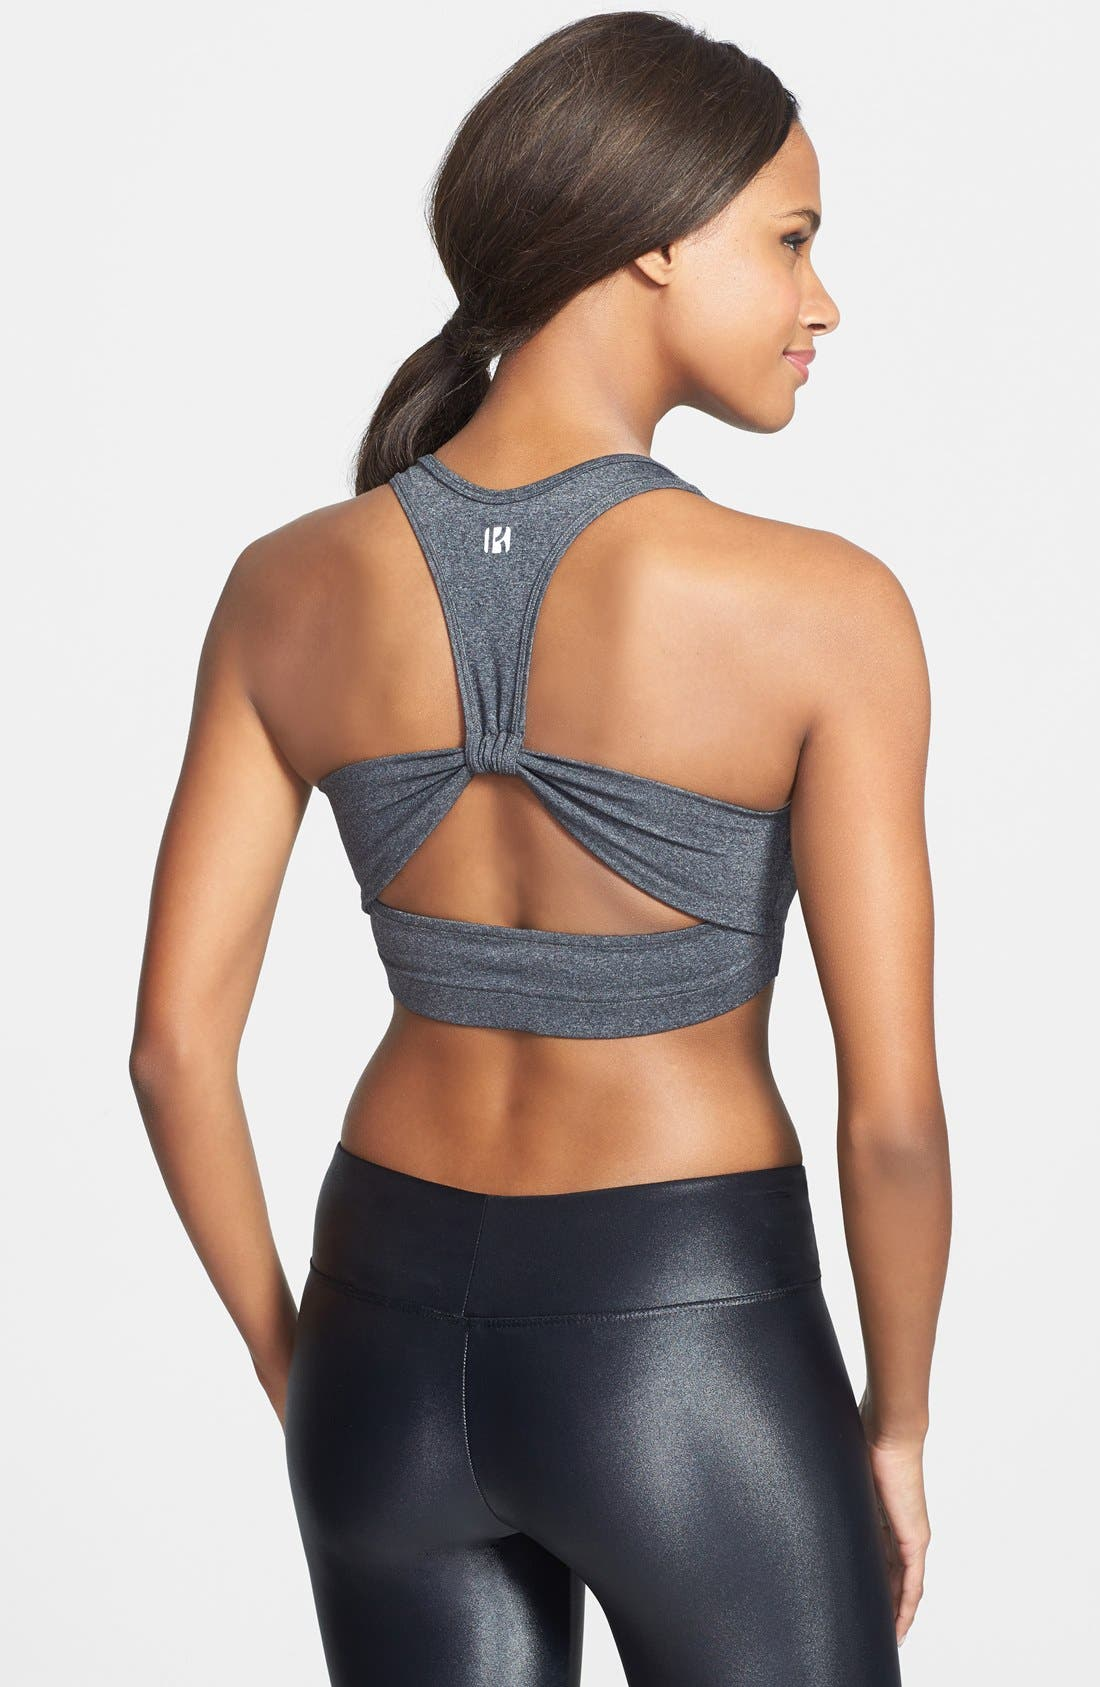 Alternate Image 1 Selected - Koral Cutout Racerback Sports Bra